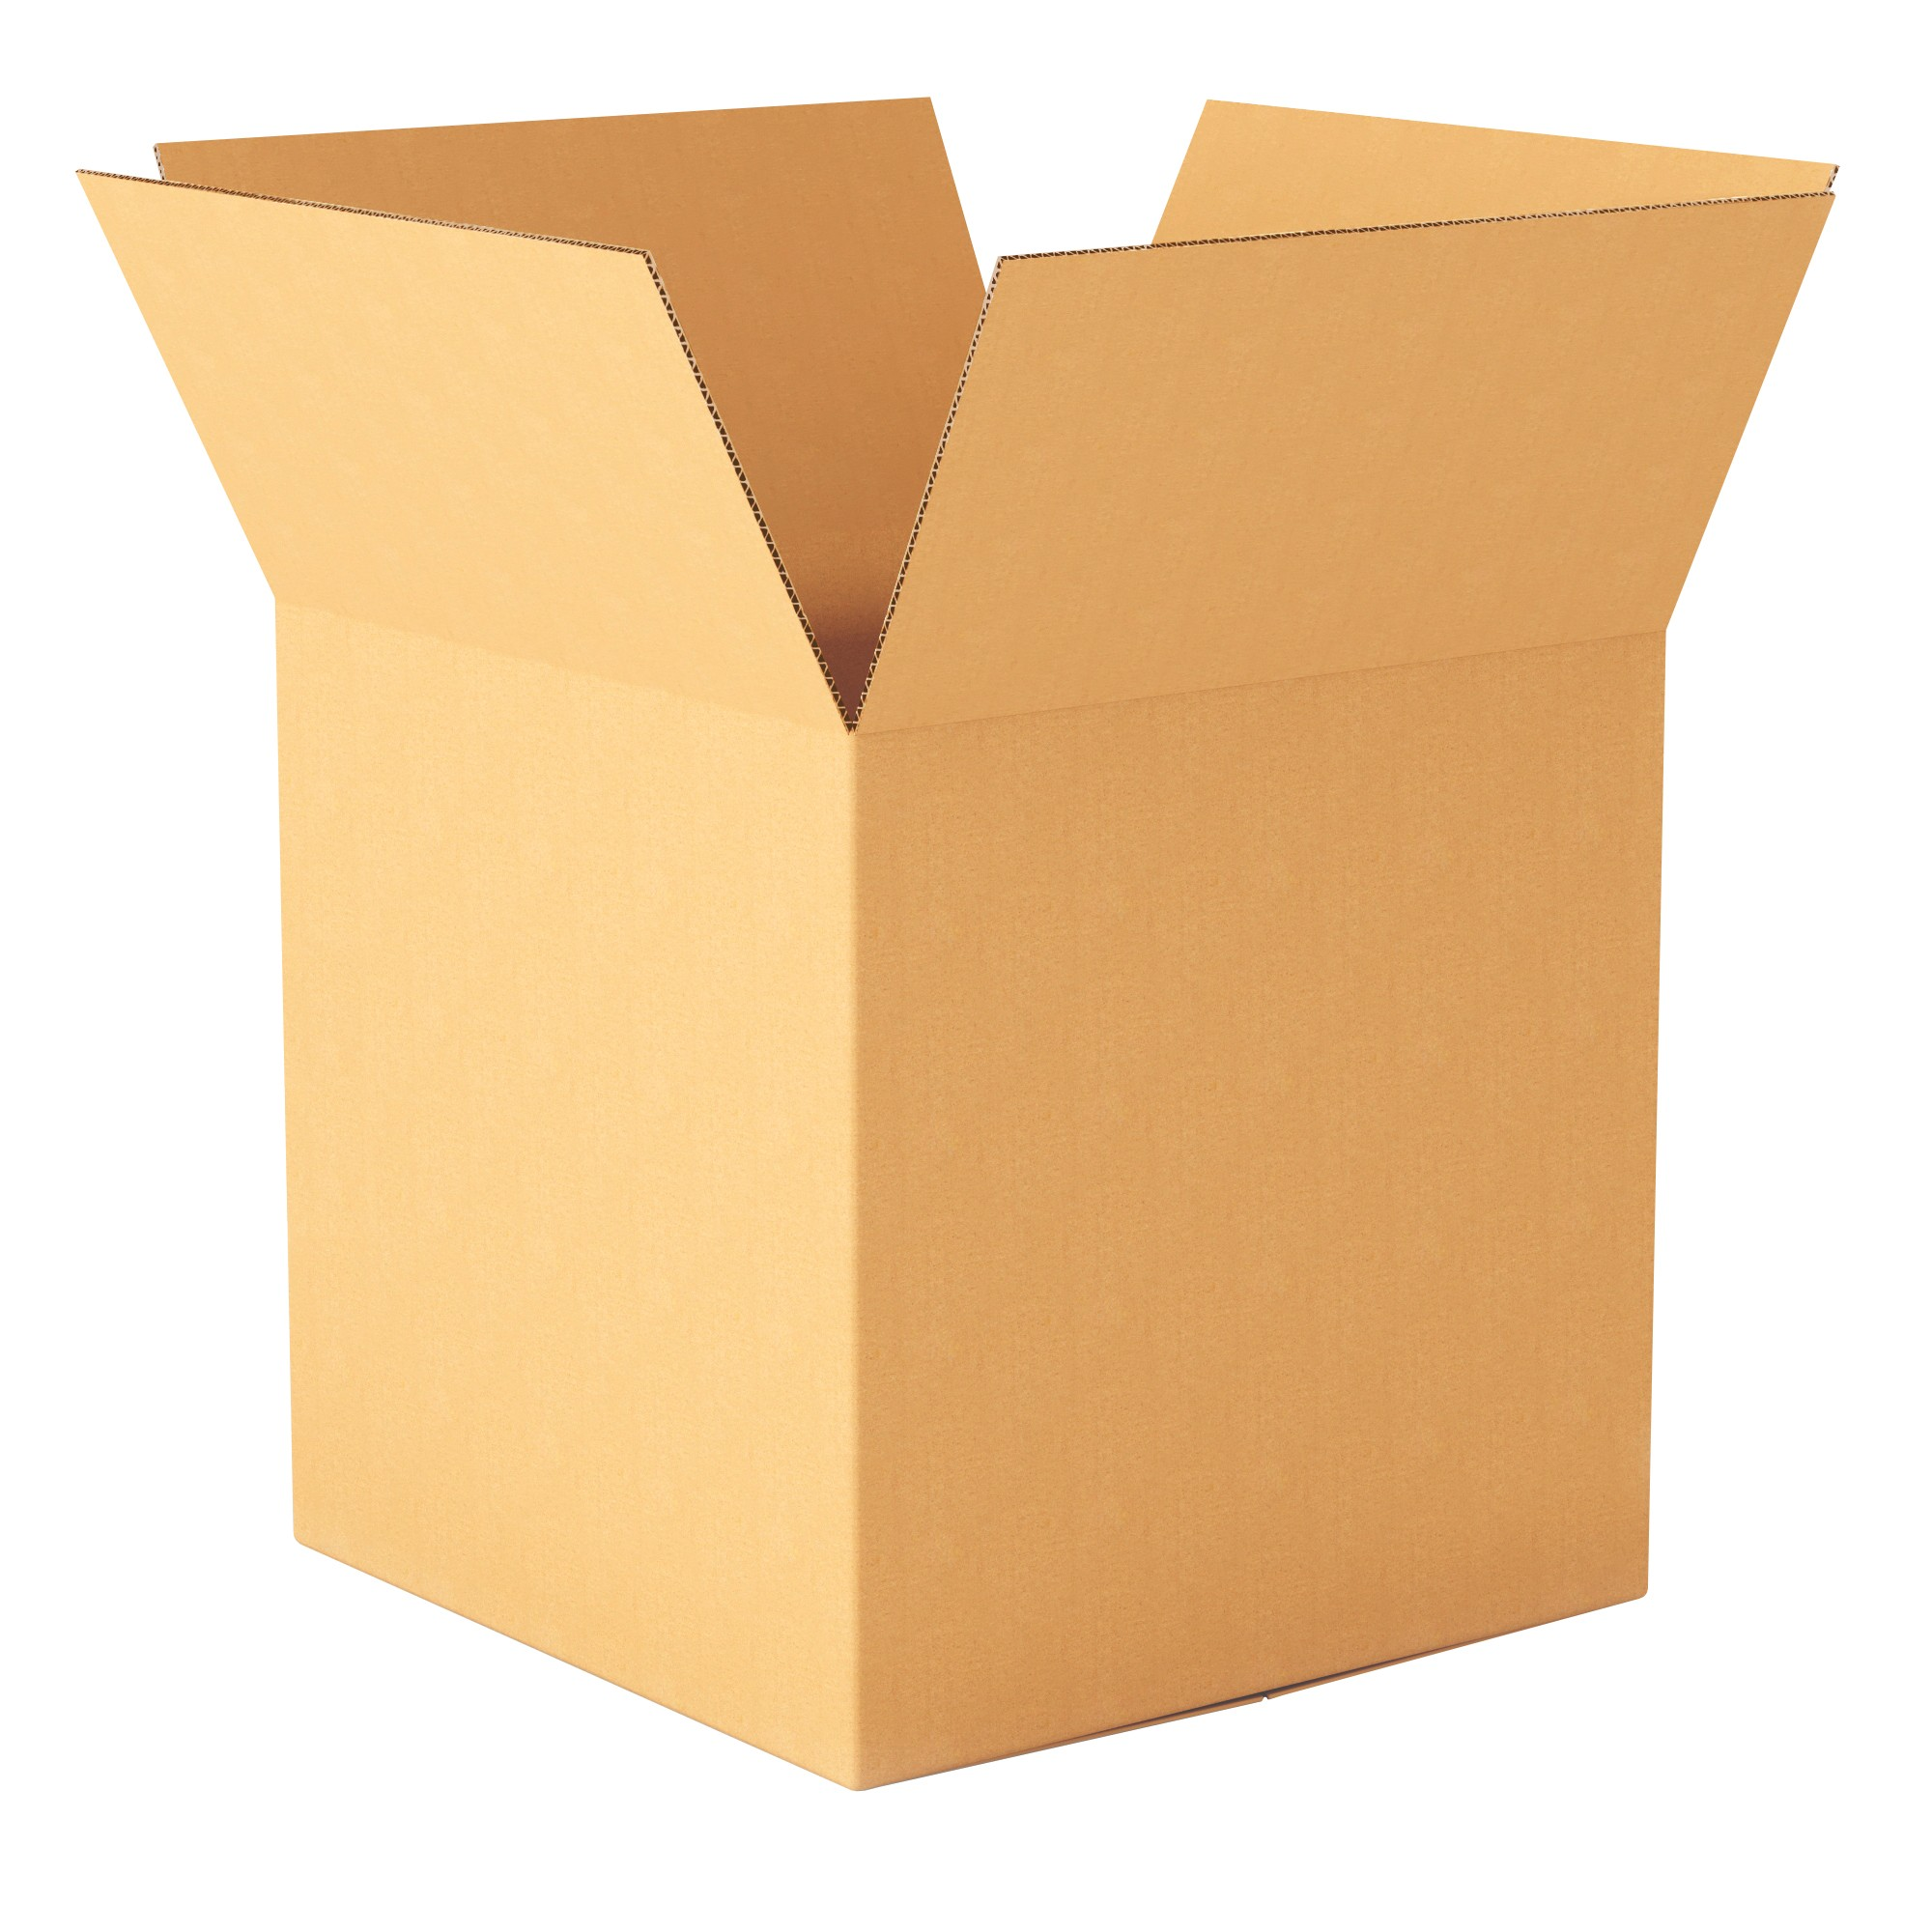 """TOTALPACK® 14 x 14 x 14"""" Single Wall Corrugated Boxes 25 Units"""